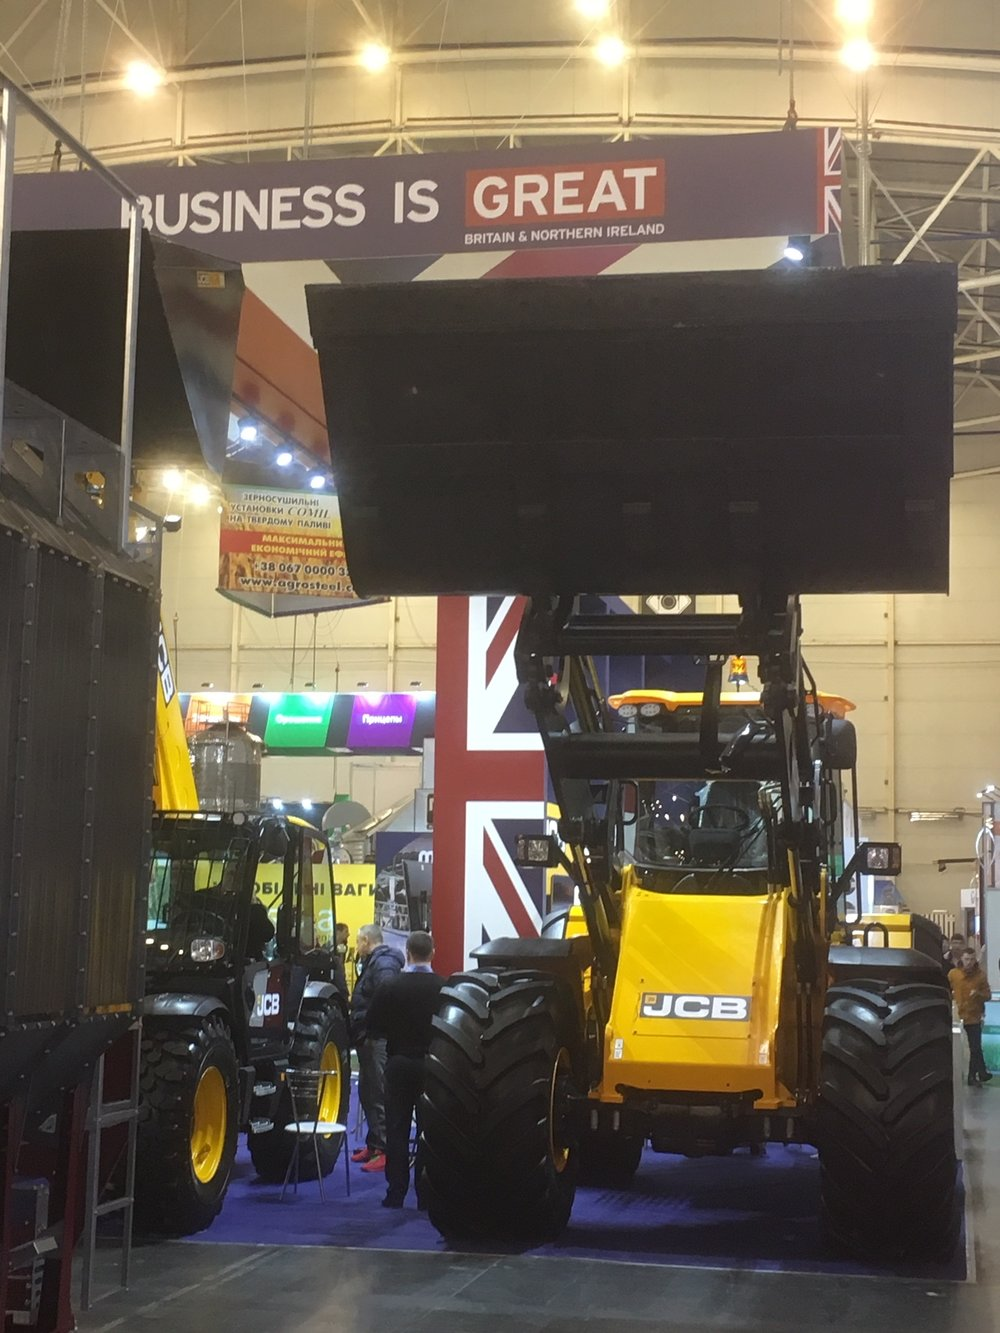 IMG_4834.UKR.JCB.Business is Great.JPG